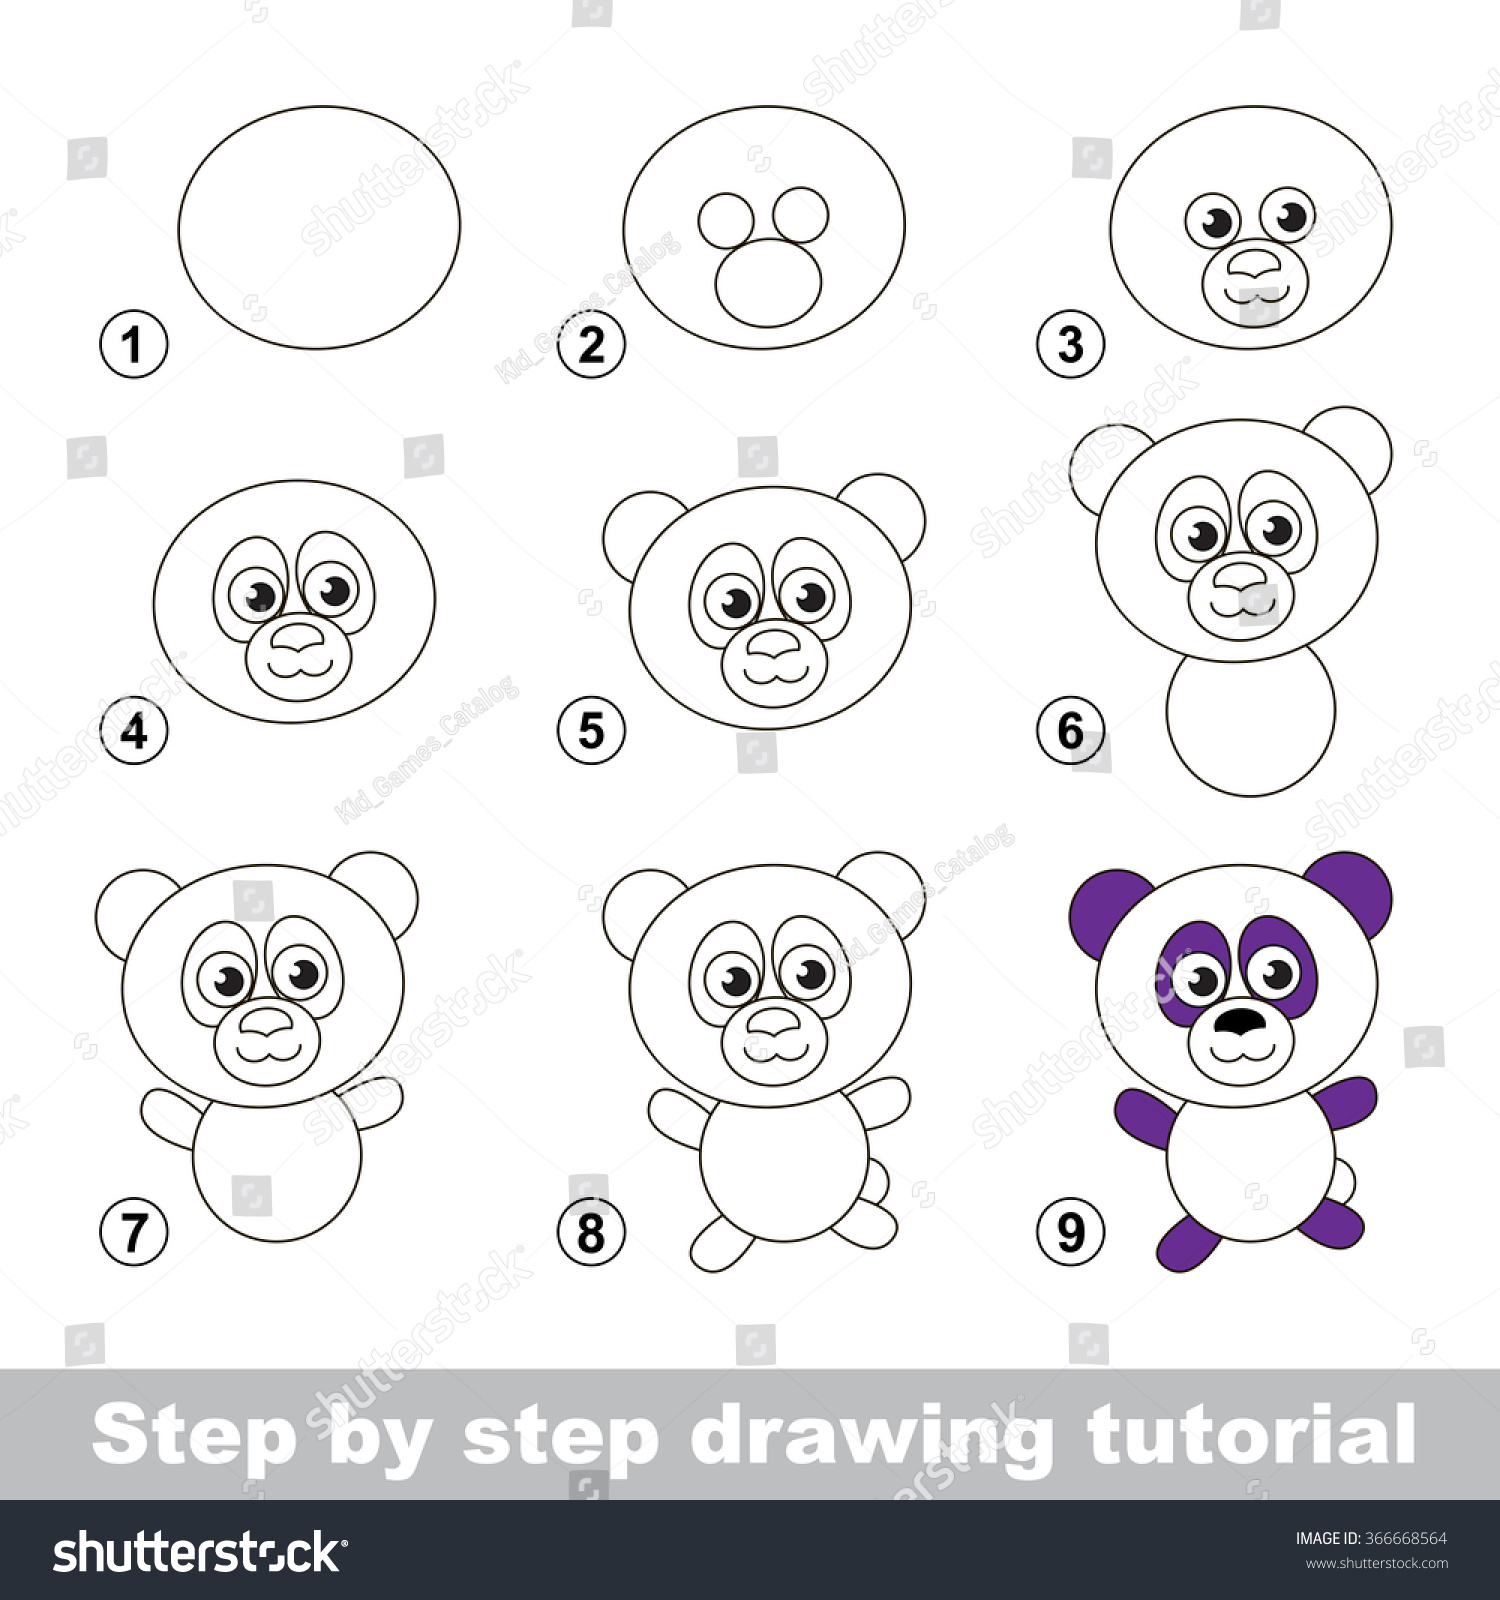 Step By Step Drawing Tutorial Visual Stock Vector 366668564 ...